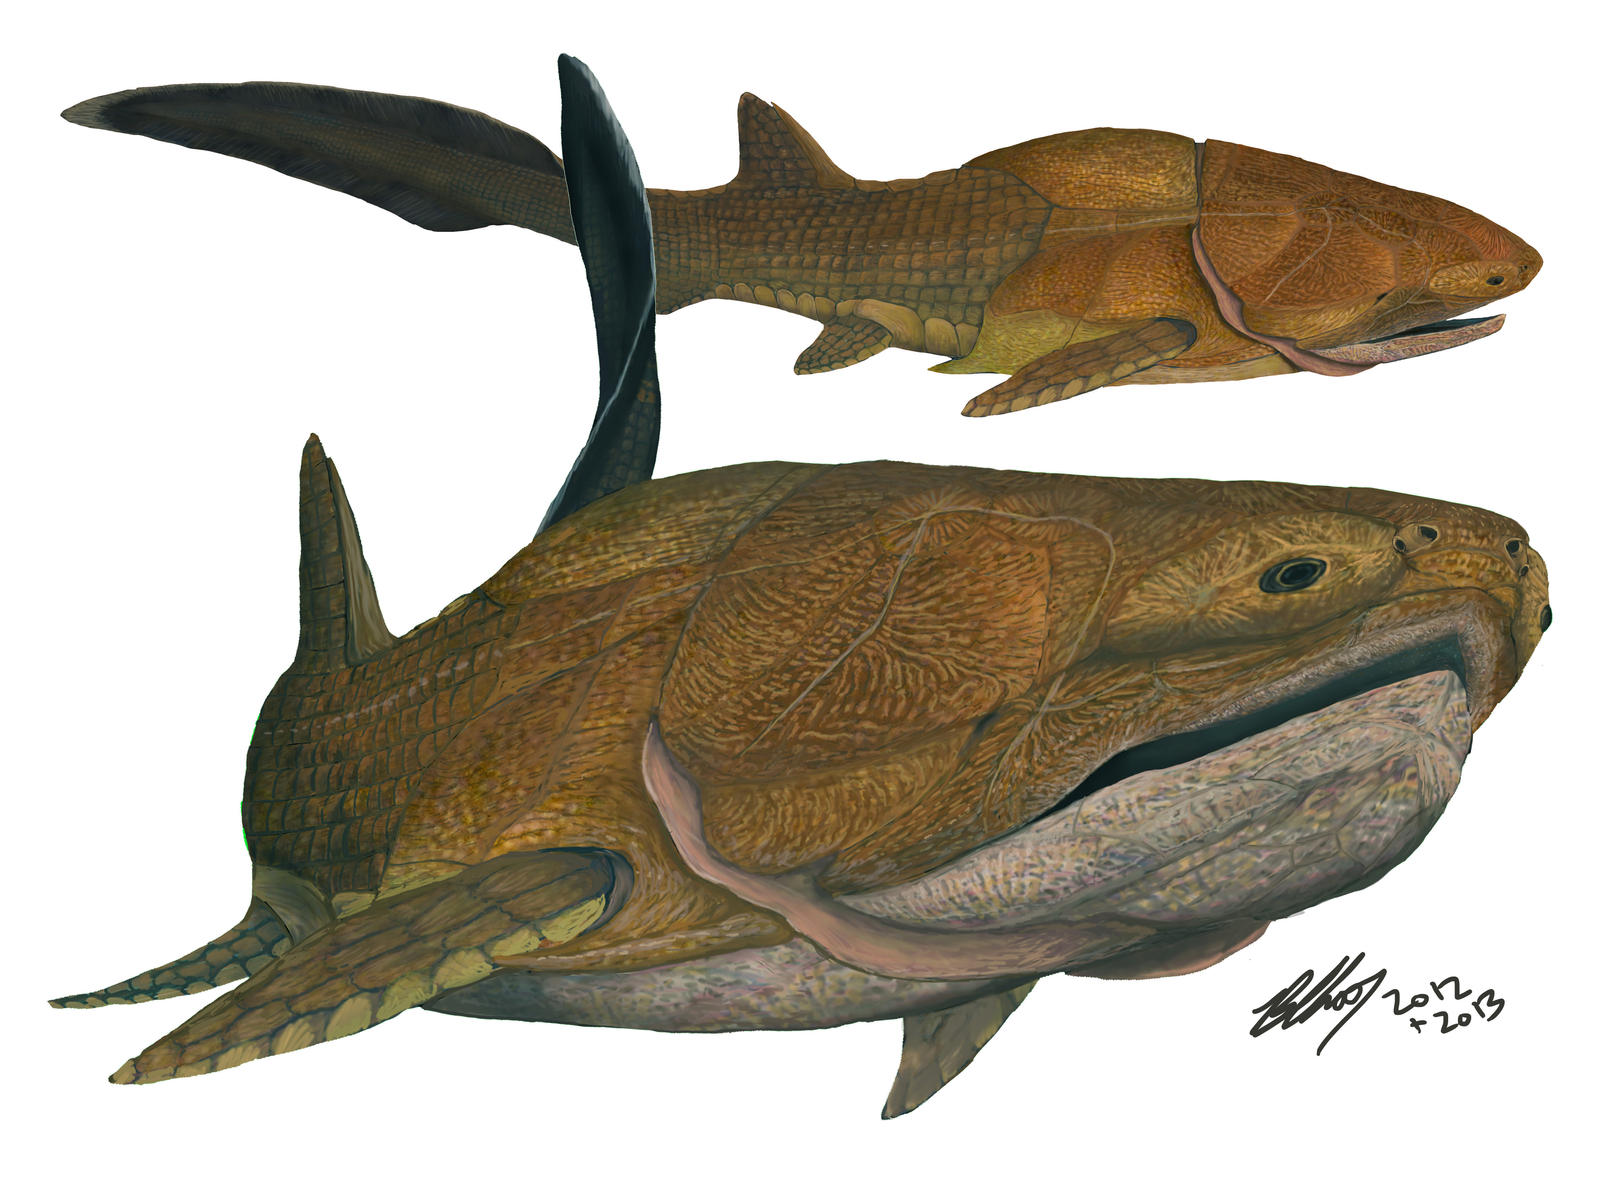 Entelognathus #4: Study of a weird fish by Gogosardina